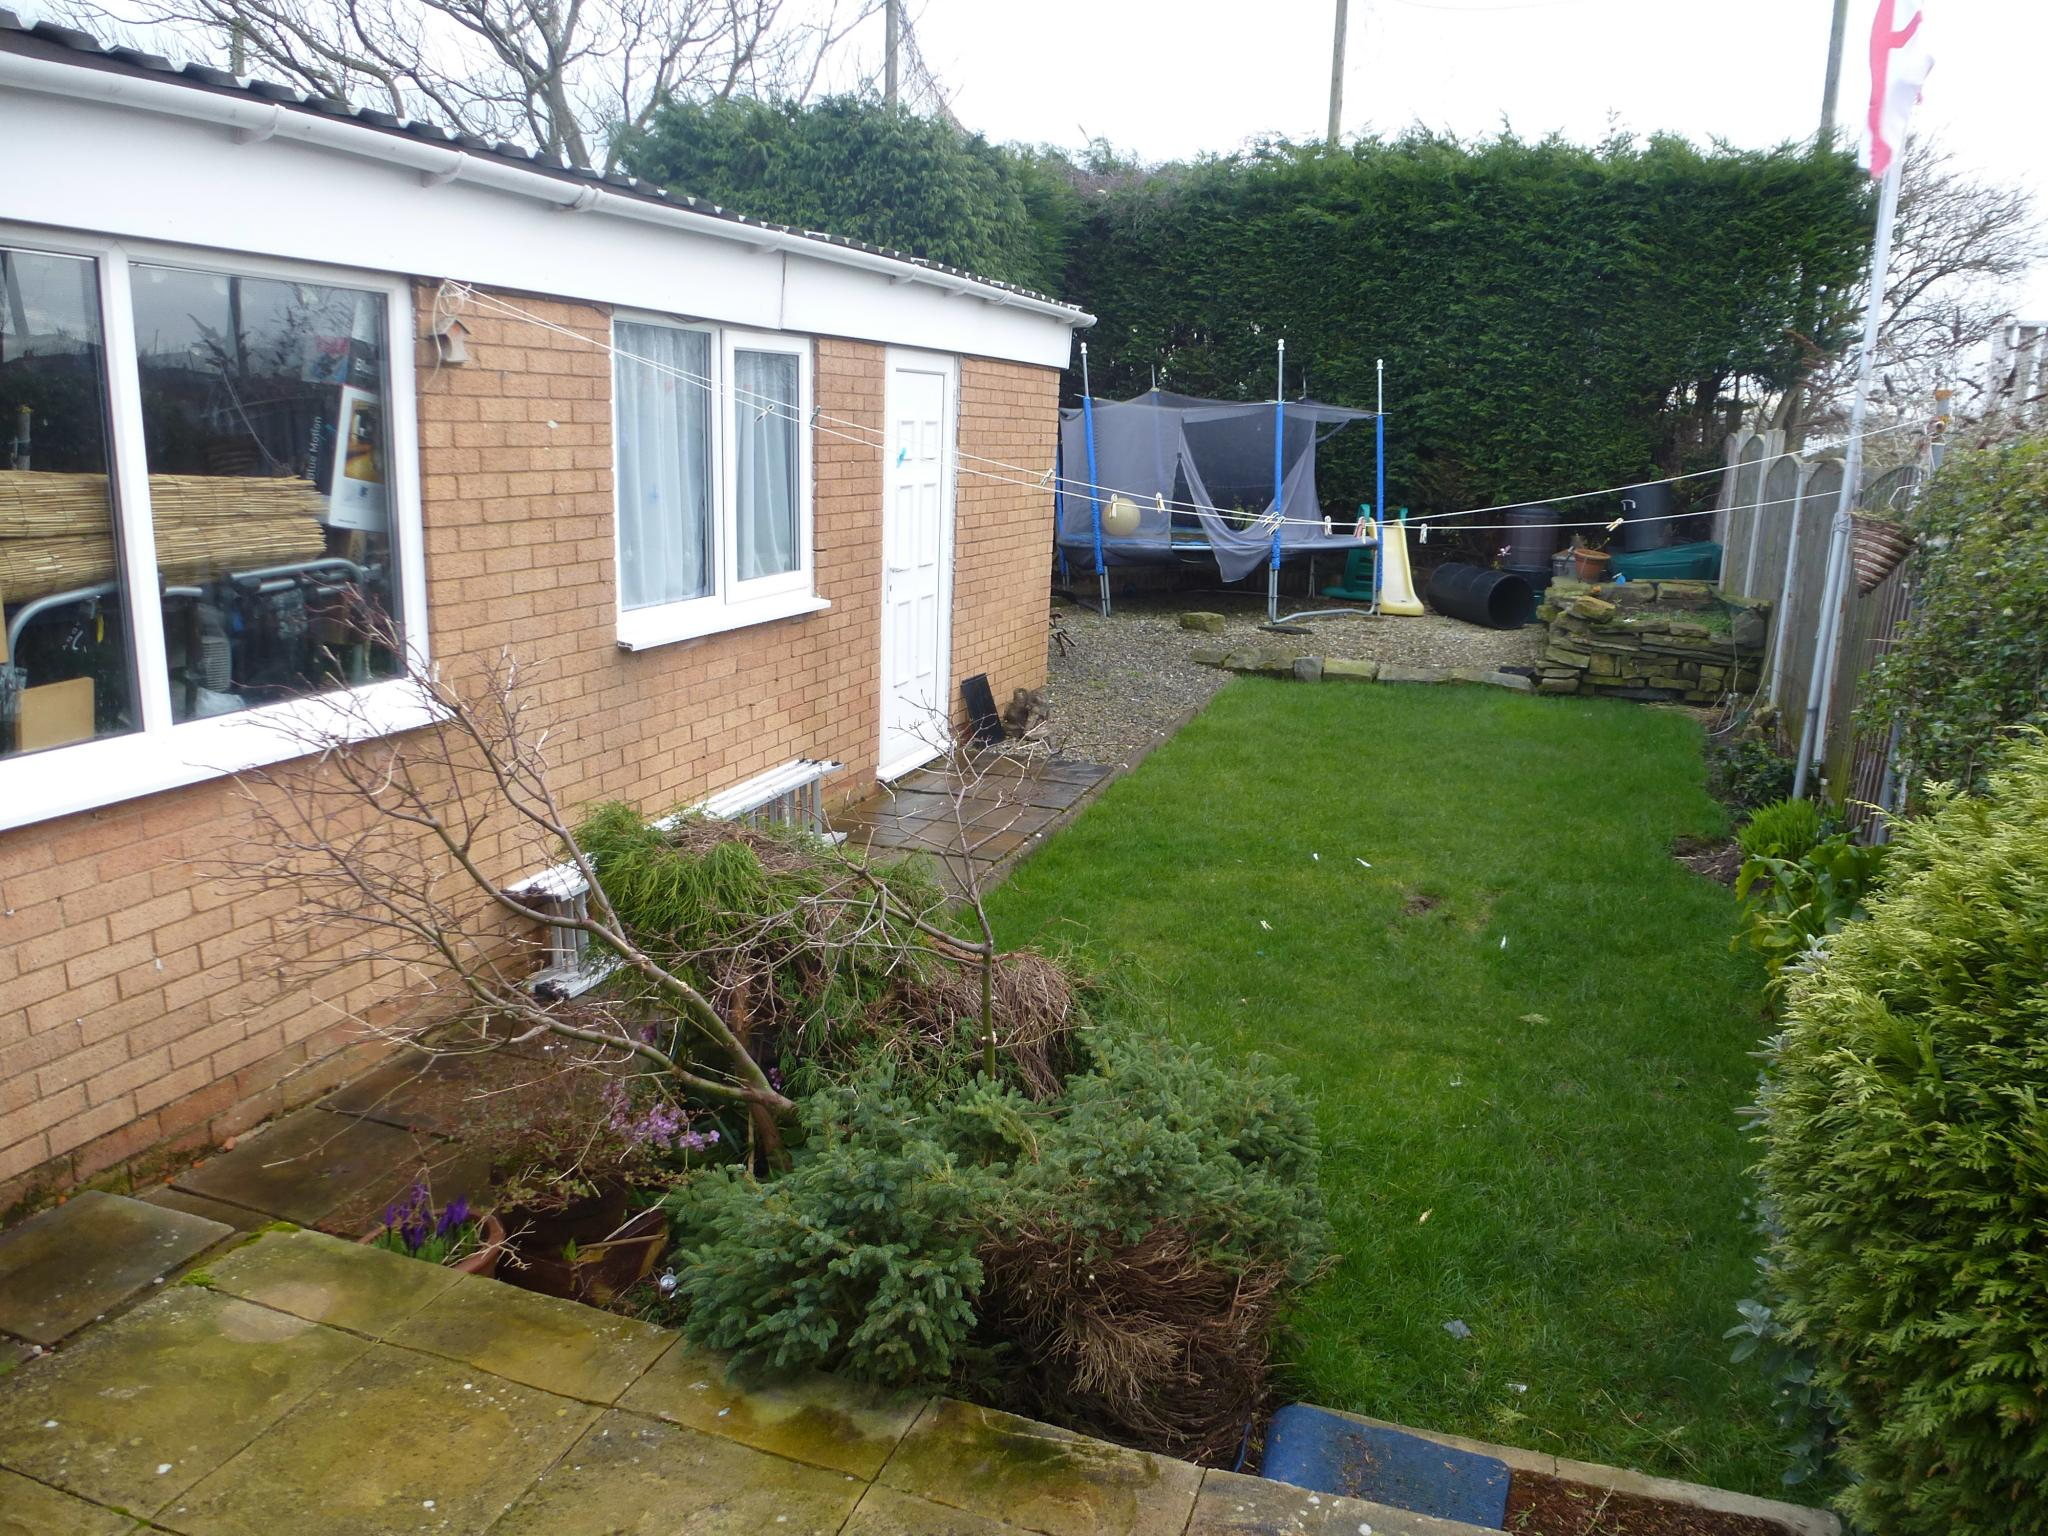 Image 1 of 2 of OUTSIDE, on Accommodation Comprising for